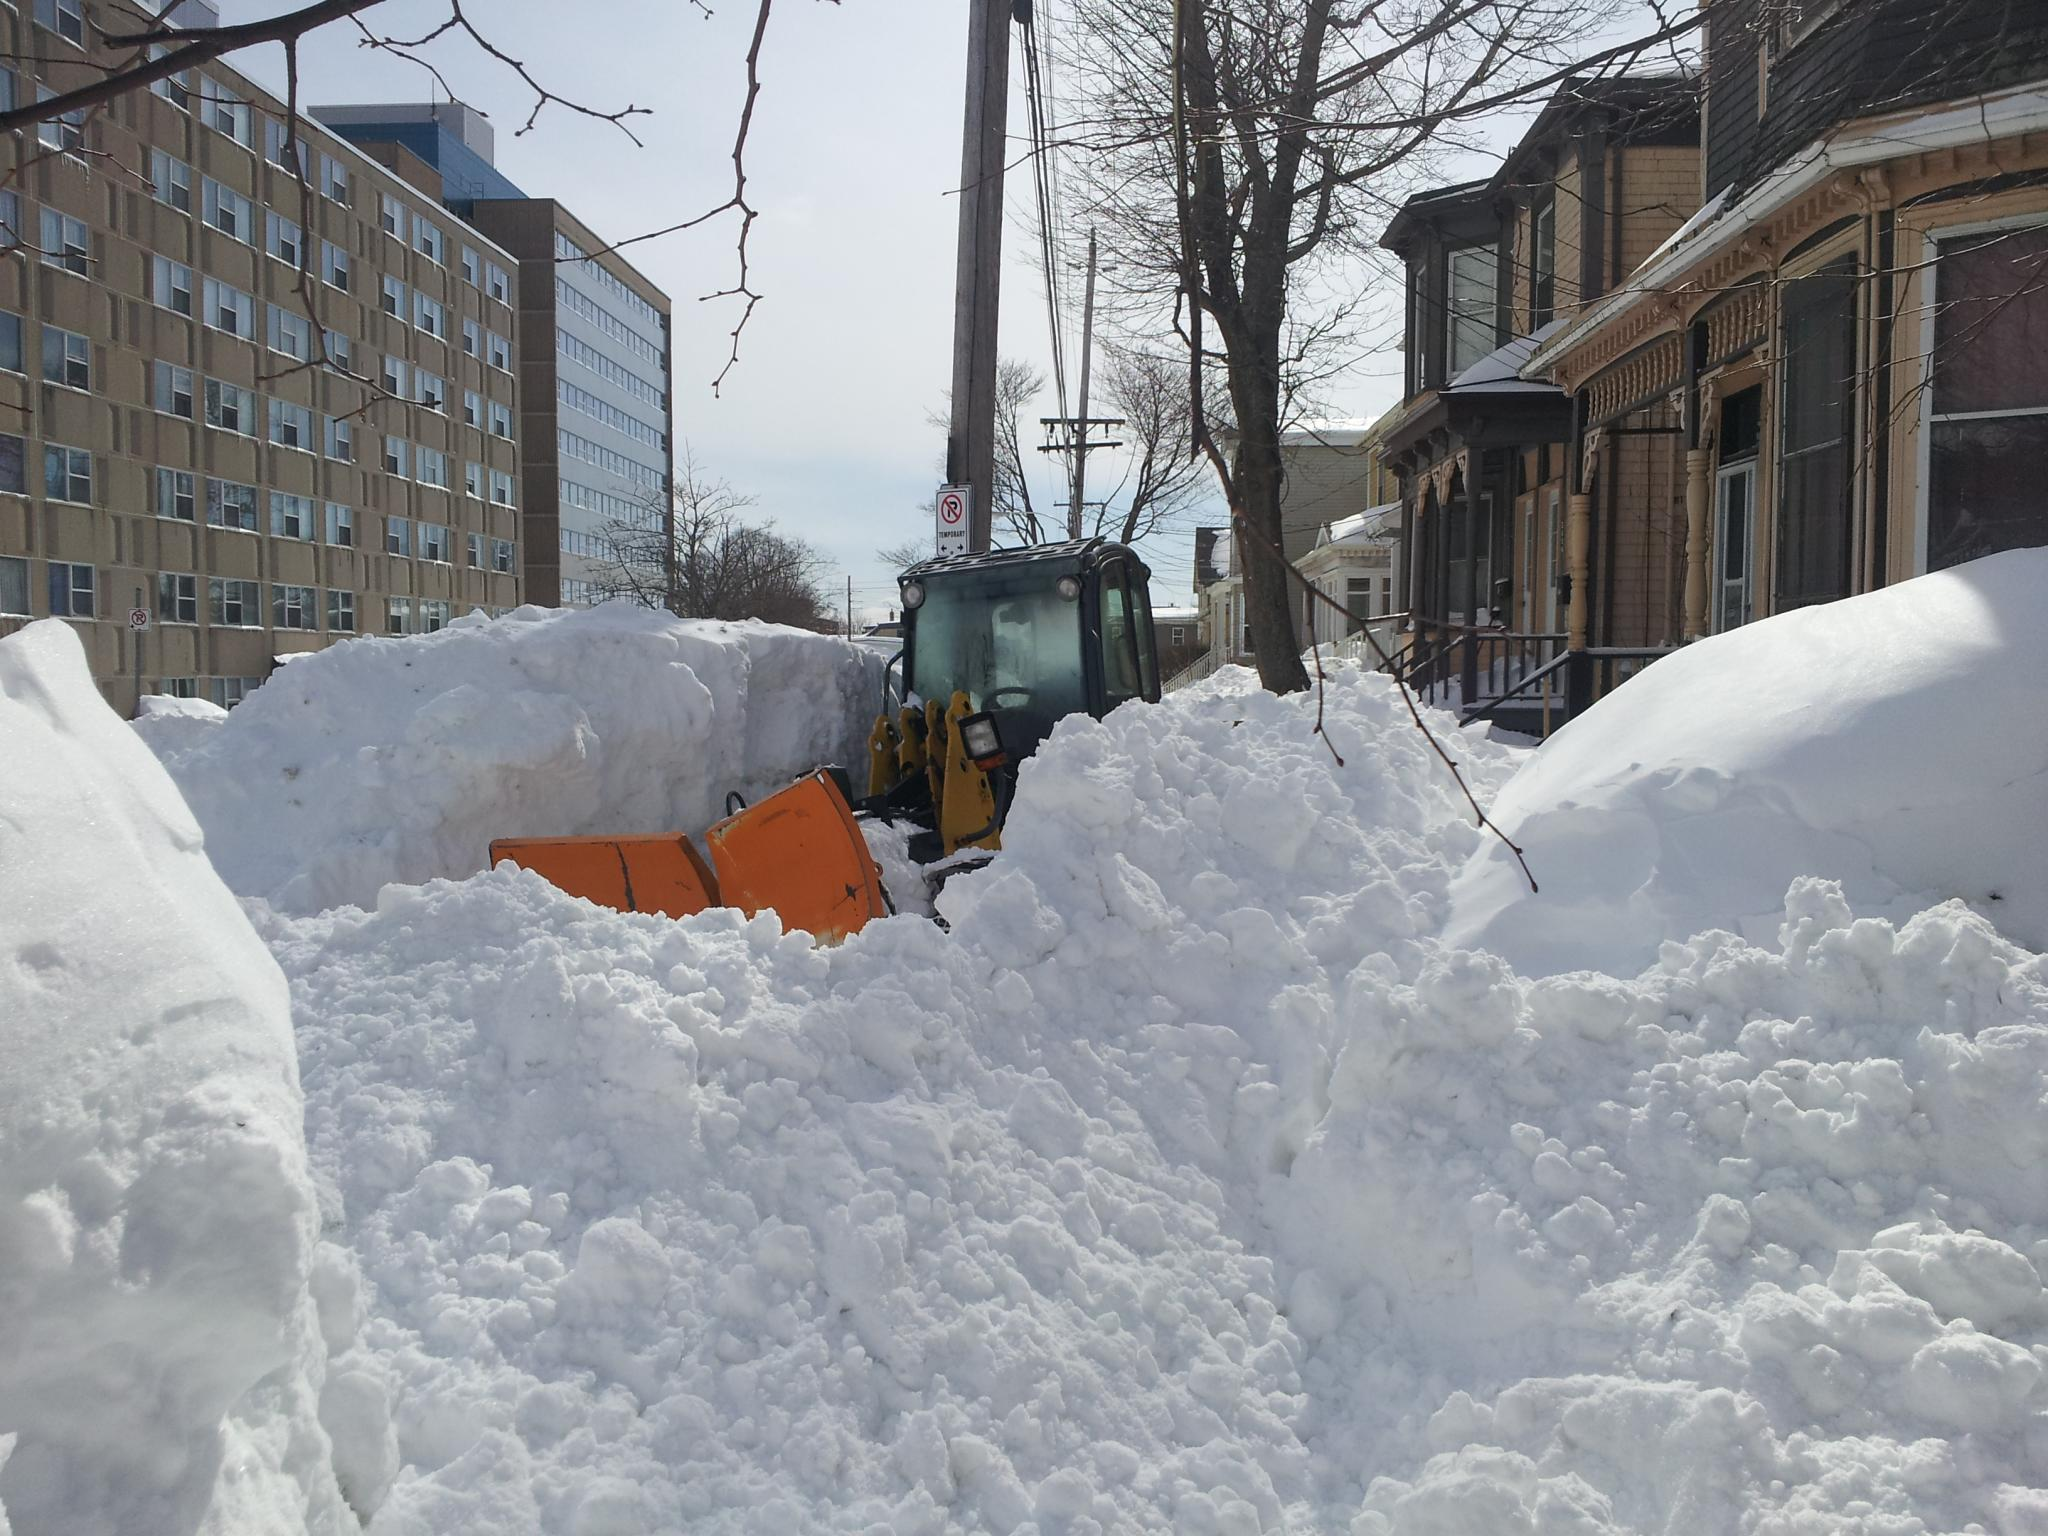 Stuck sidewalk plow, Halifax, March 2015. Source: Flickr, urbanmkr